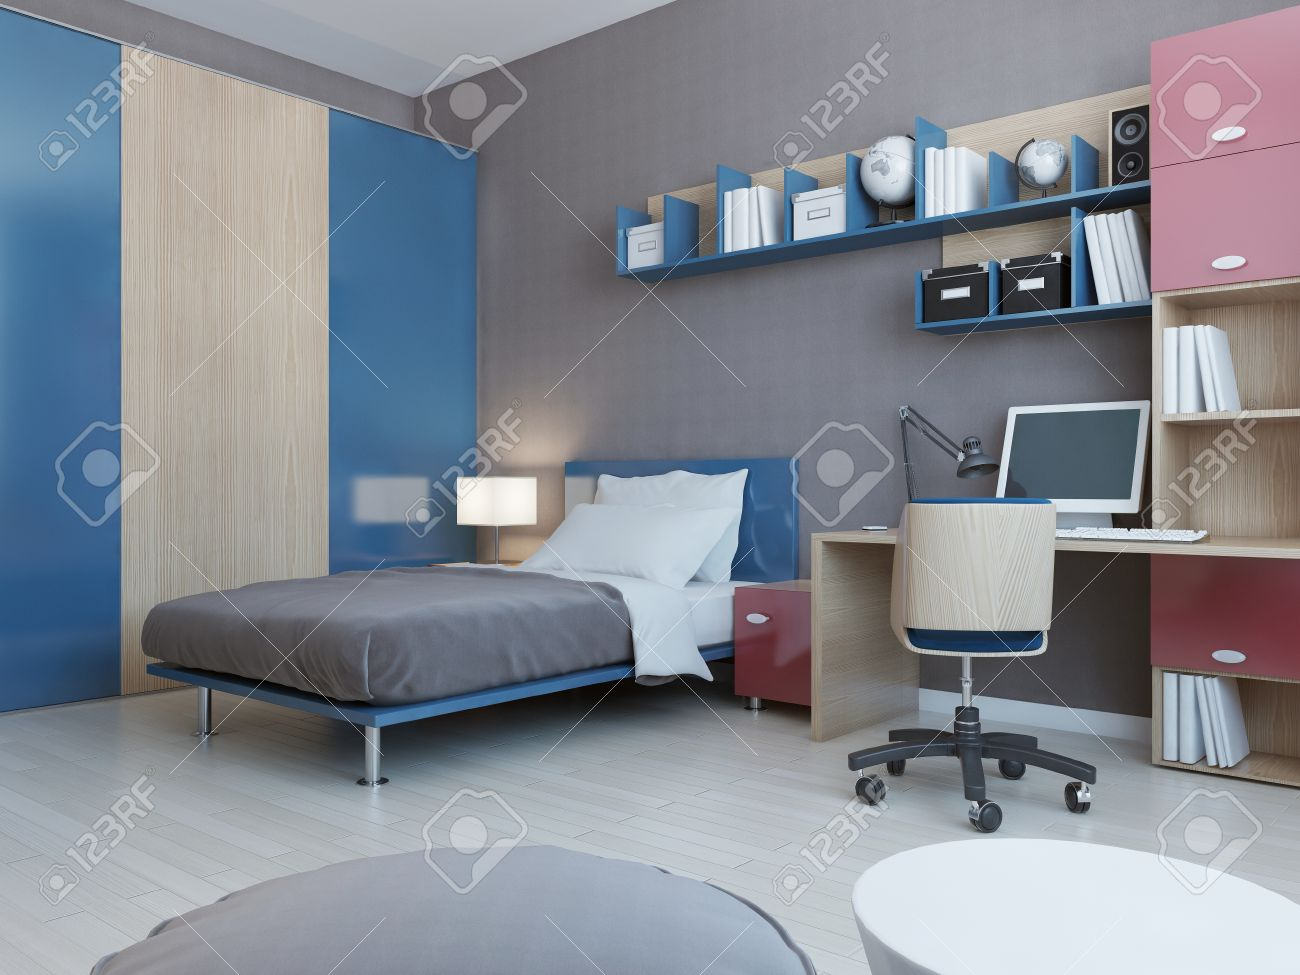 View Of Teenagers Bedroom In Red And Blue Colors Light Grey Wall Laminate